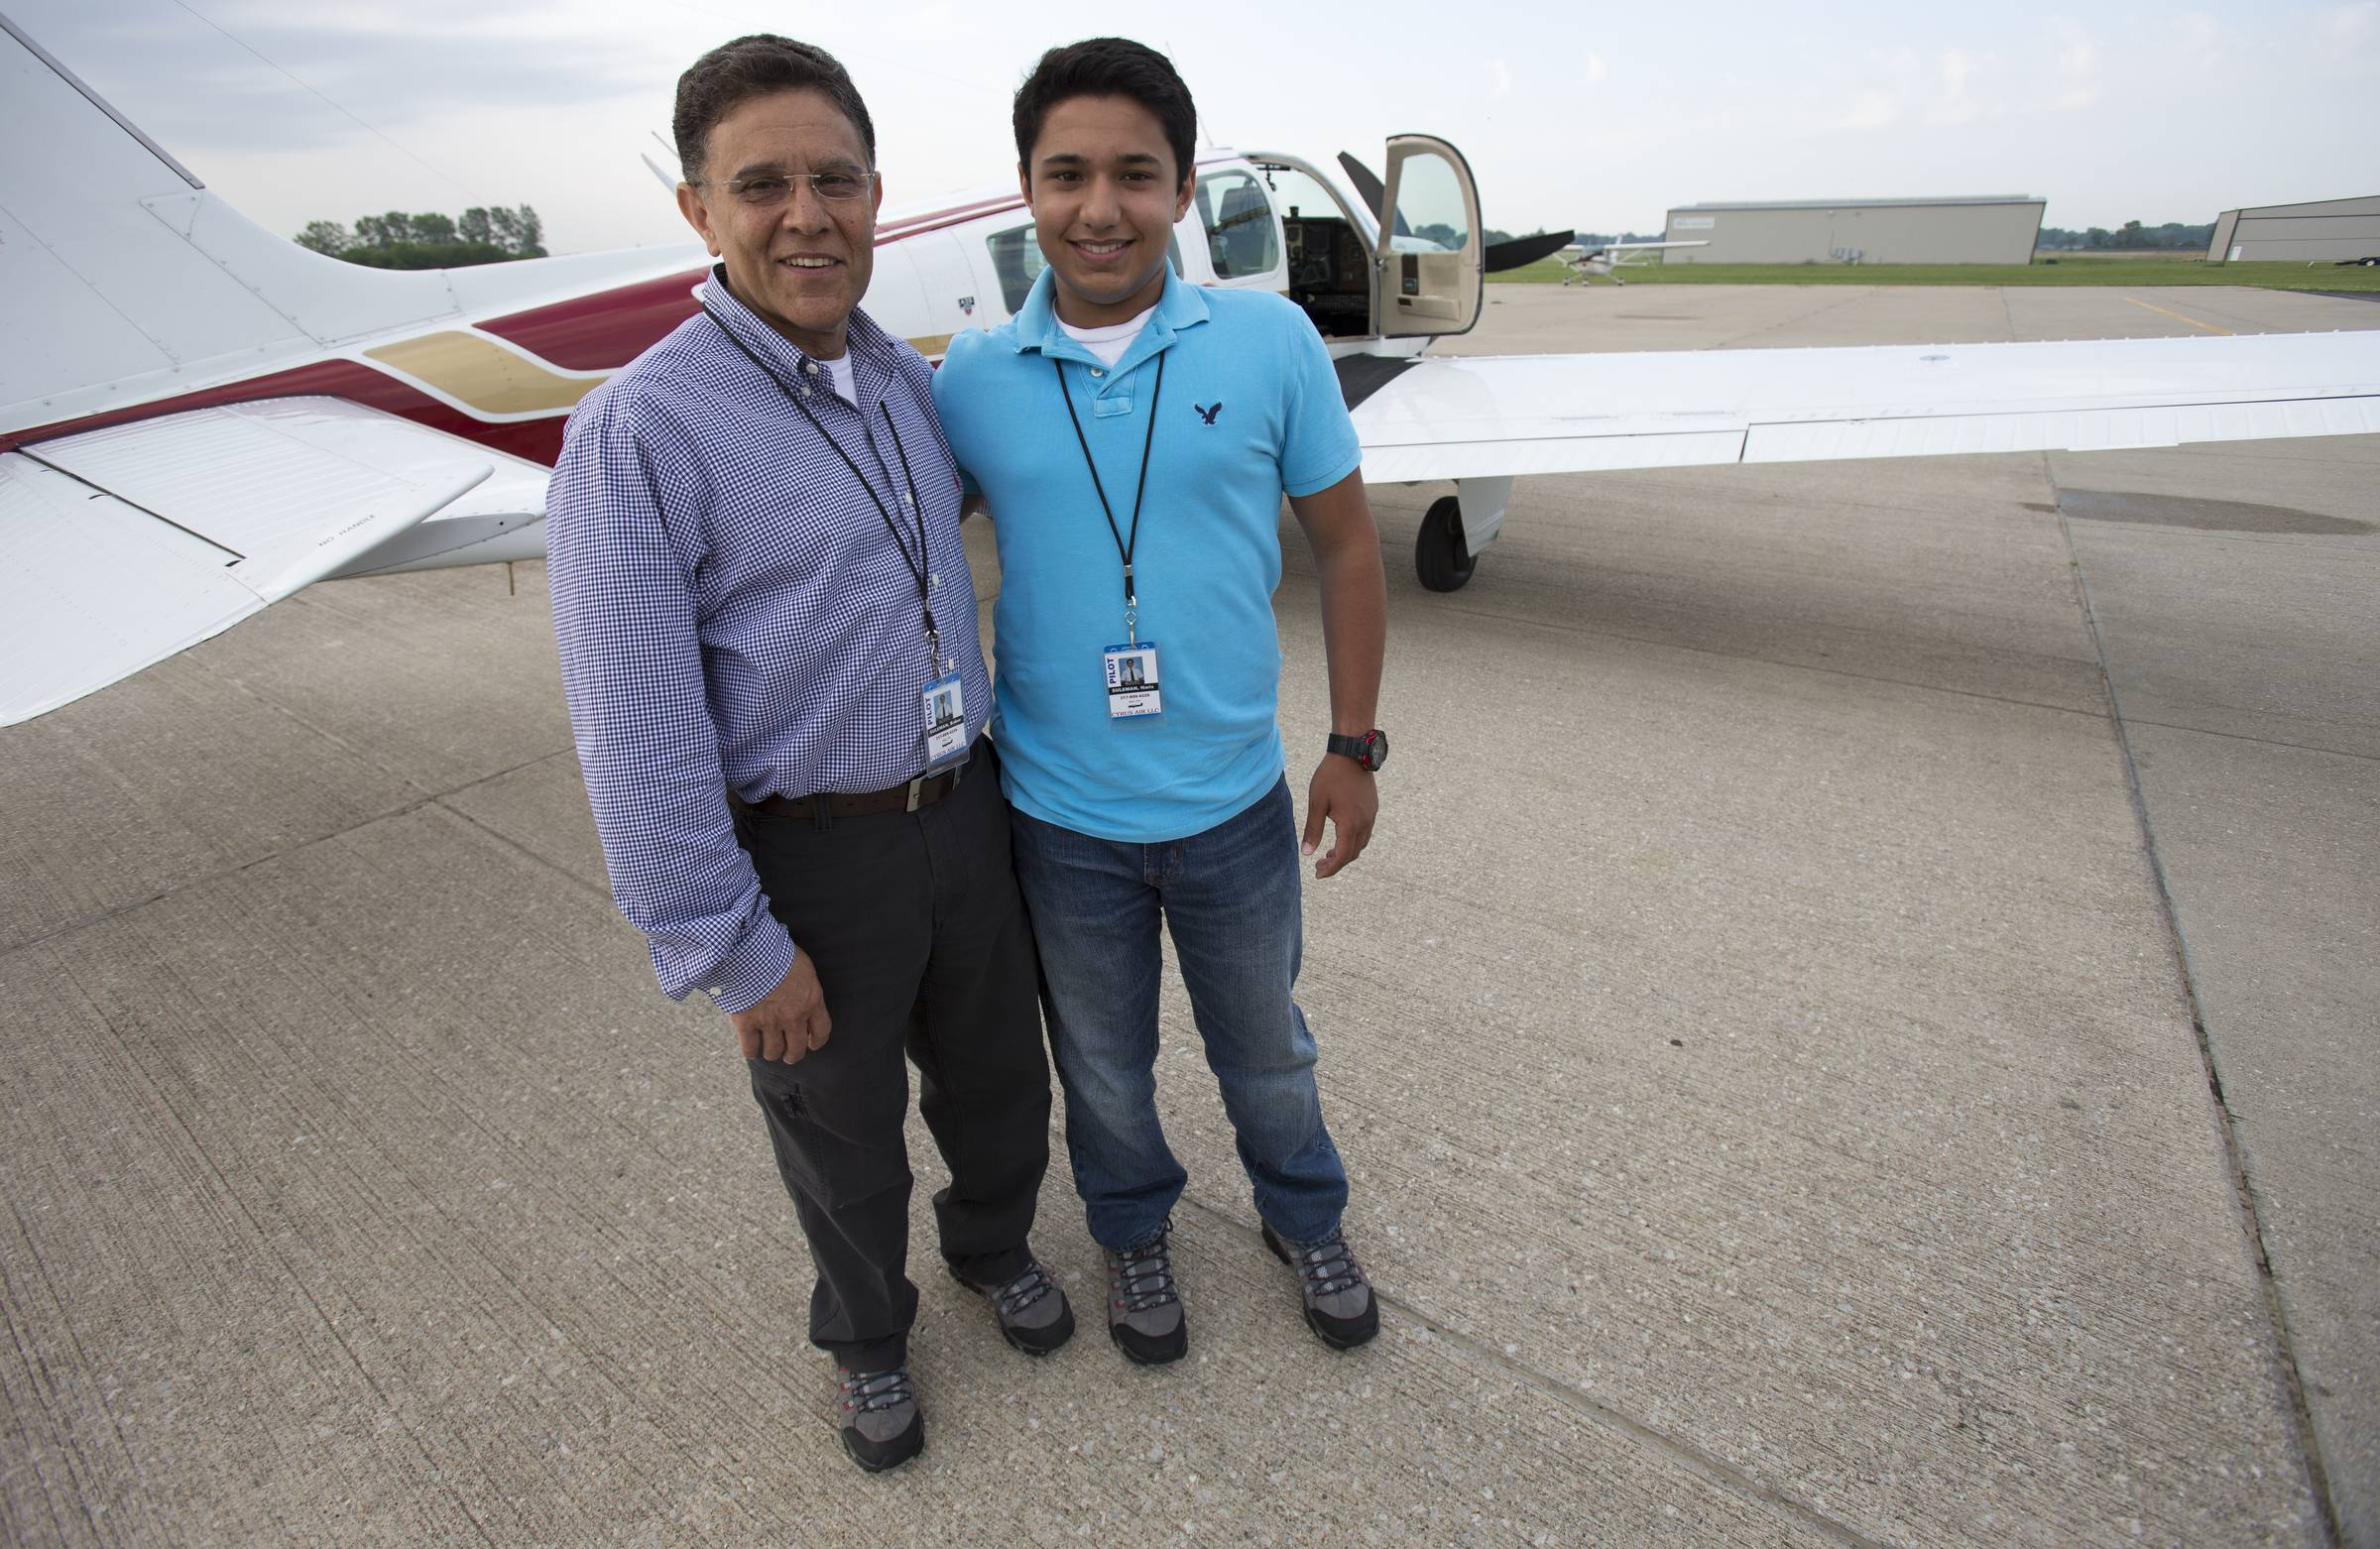 Babar Suleman and son, Haris Suleman, 17, stand next to their plane at an airport in Greenwood, Ind., June 19, before taking off for an around-the-world flight. Their single-engine plane crashed in waters off American Samoa on Wednesday.